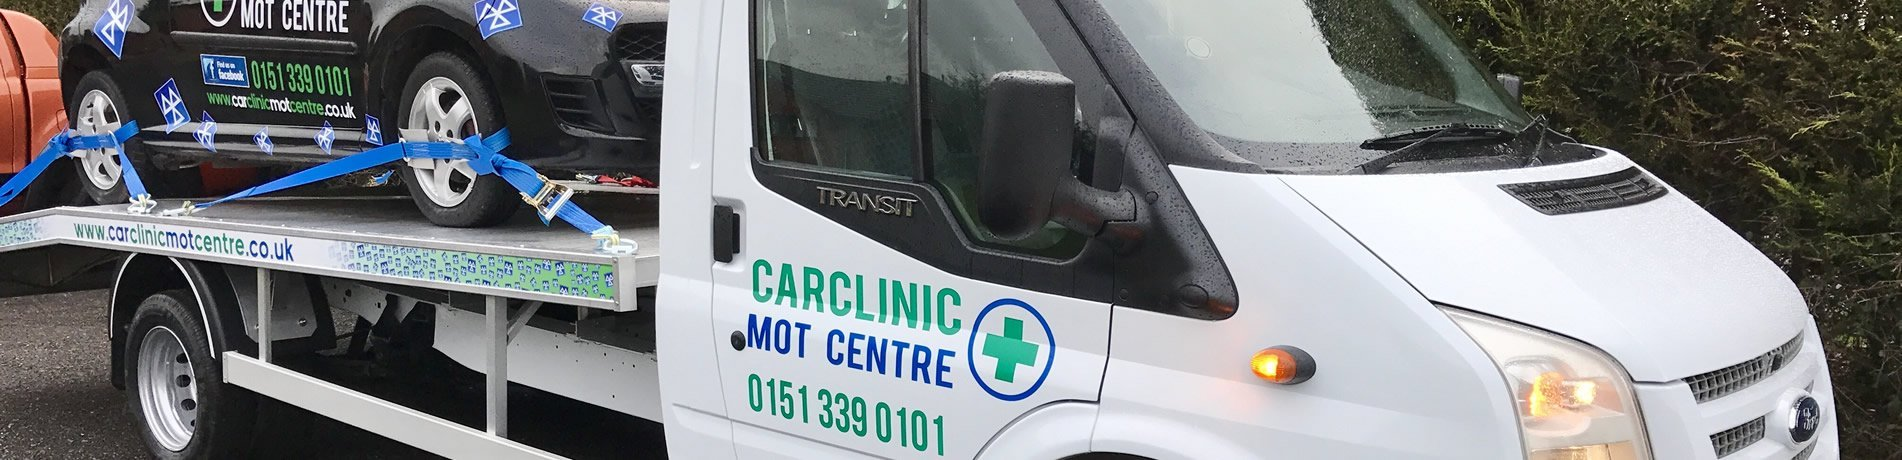 Car Clinic MOT Centre Launch Breakdown Recovery Service